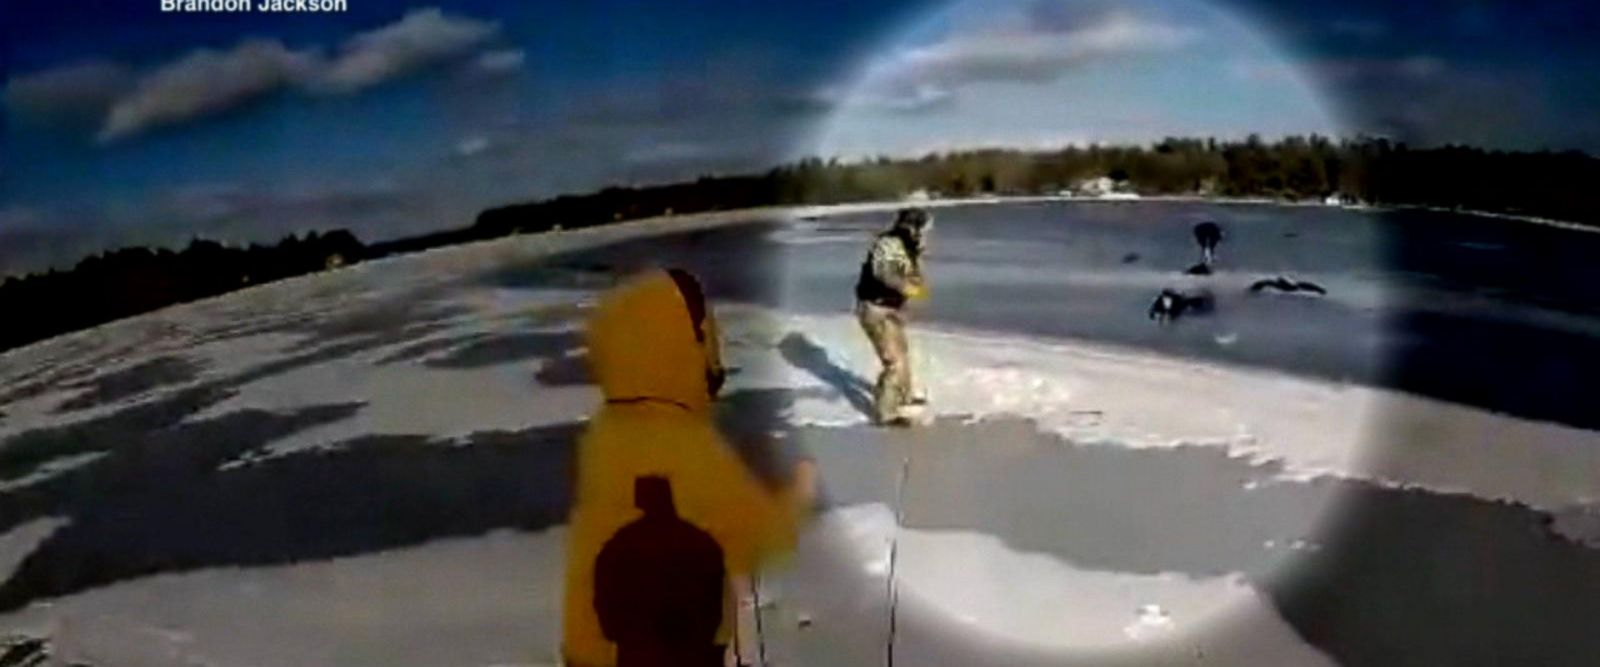 VIDEO: Good Samaritans rescue teen girl after snowmobile accident